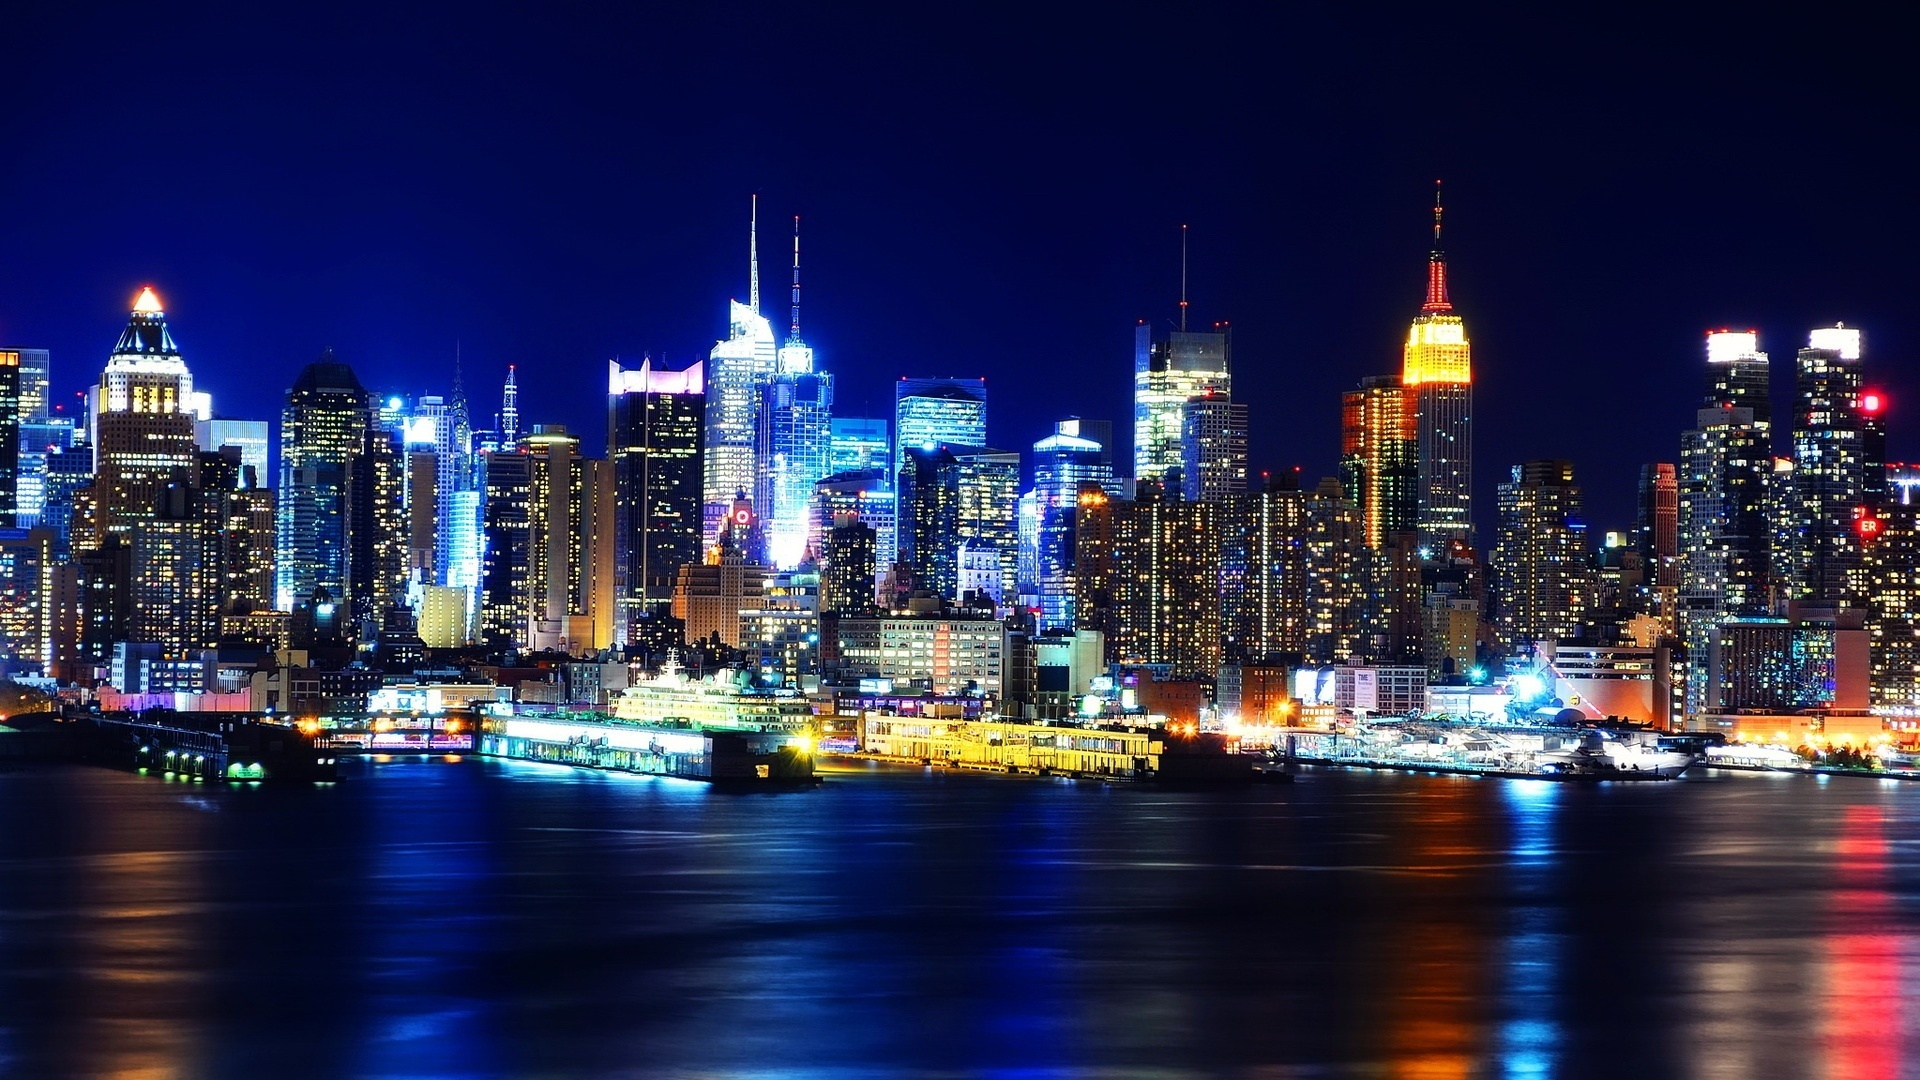 at Night Wallpaper wallpaper New York City at Night Wallpaper hd 1920x1080